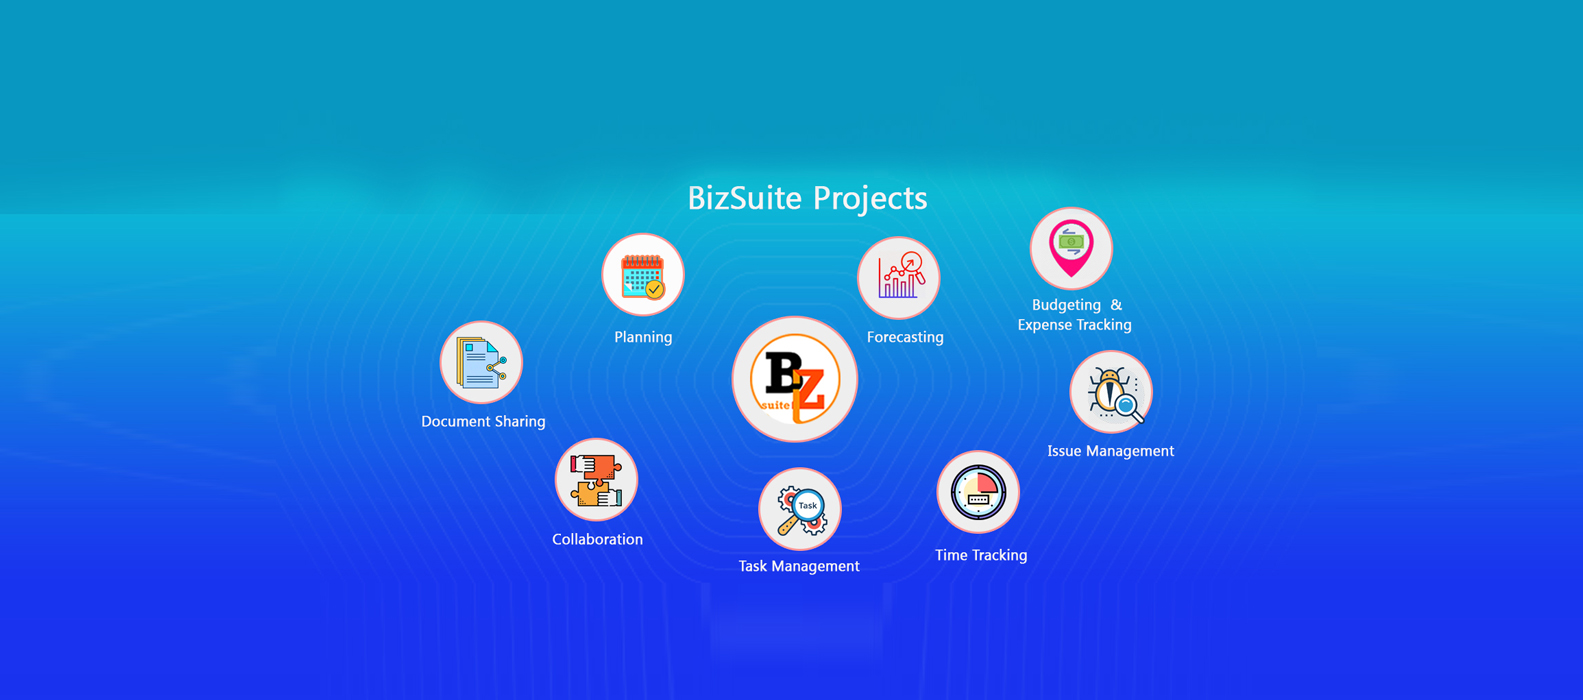 Bizsuite Projects